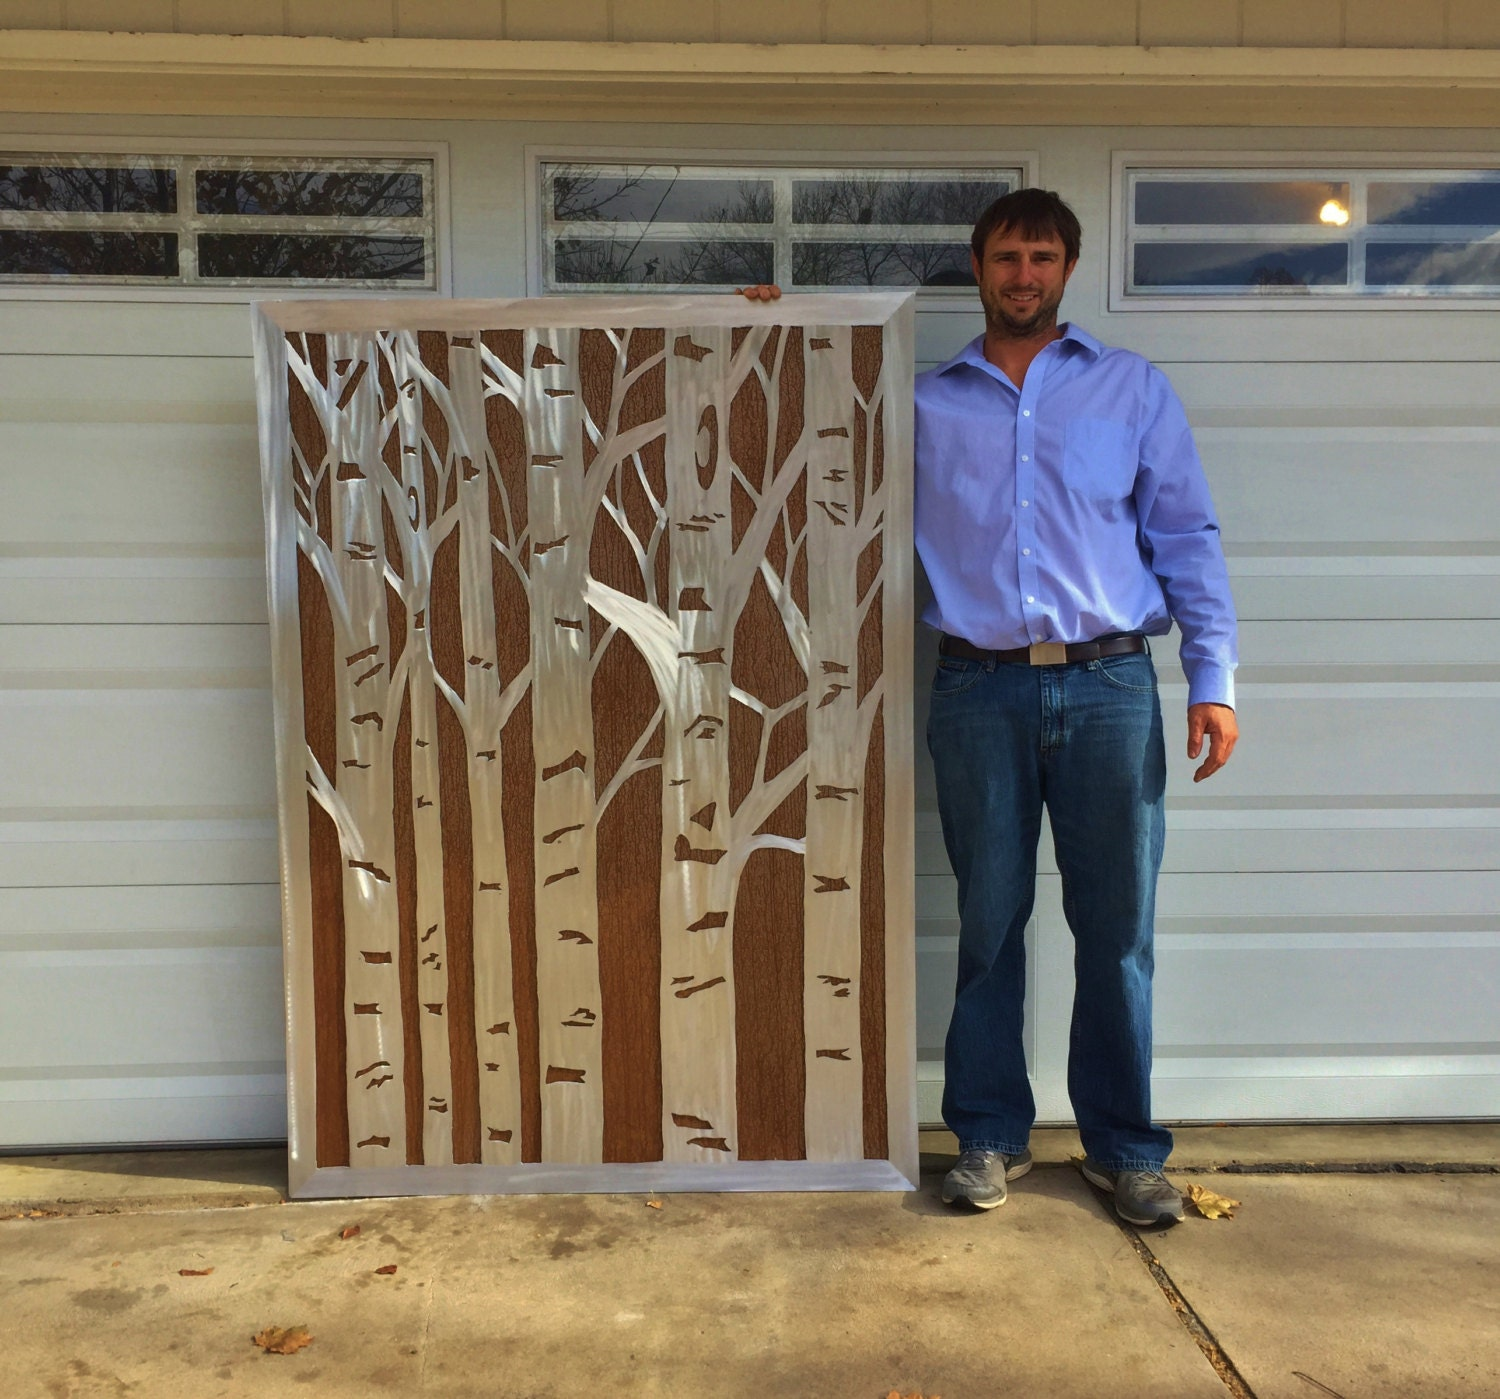 Large metal wall art aspen trees rustic home decor nature inspired front porch decor modern farmhouse nature lovers gift wall hanging